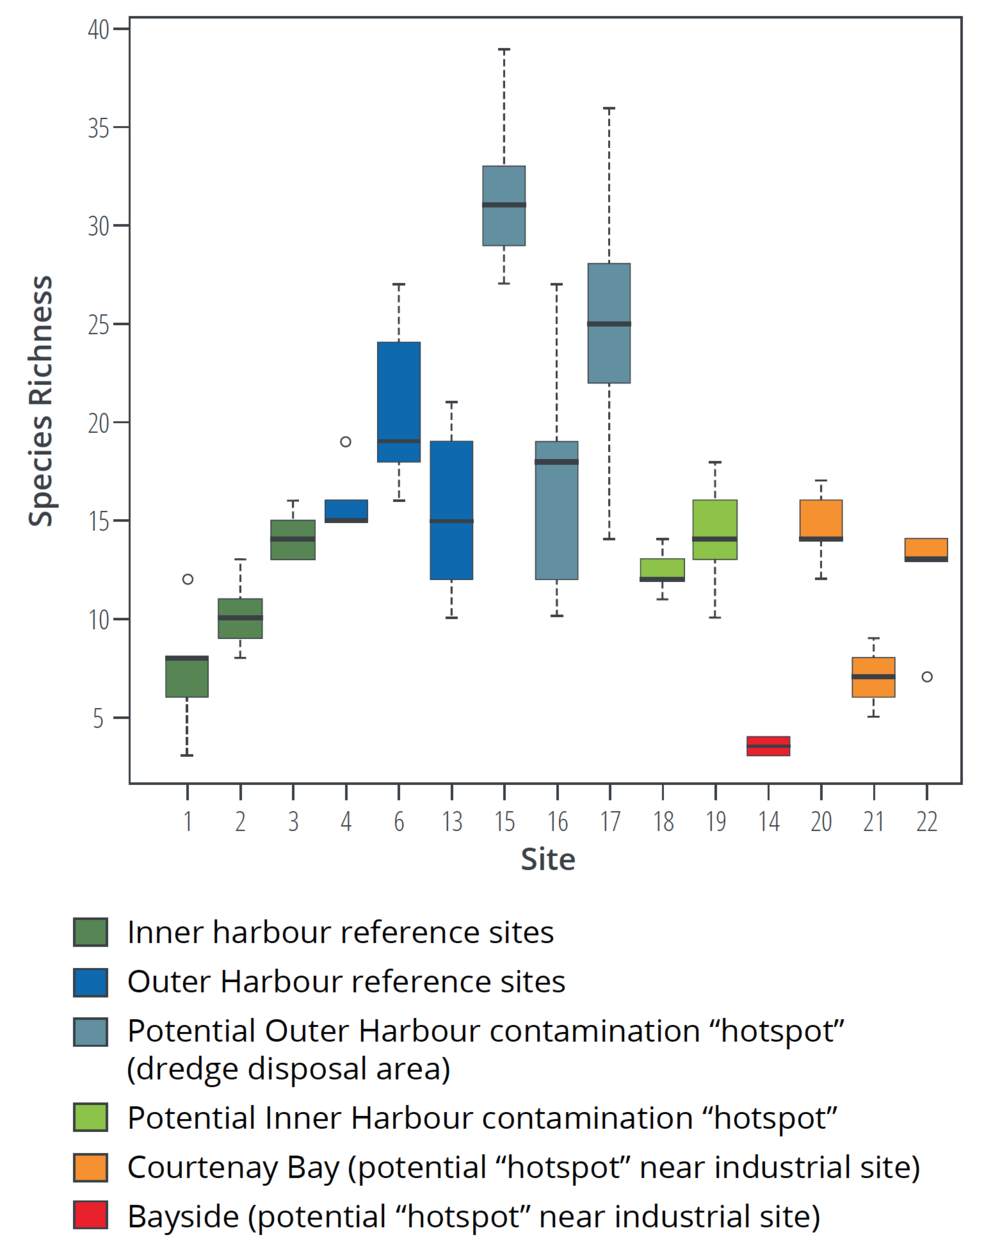 Differences in species richness (total number of species) of infaunal invertebrates at reference and potentially impacted sites in the inner and outer Saint John Harbour